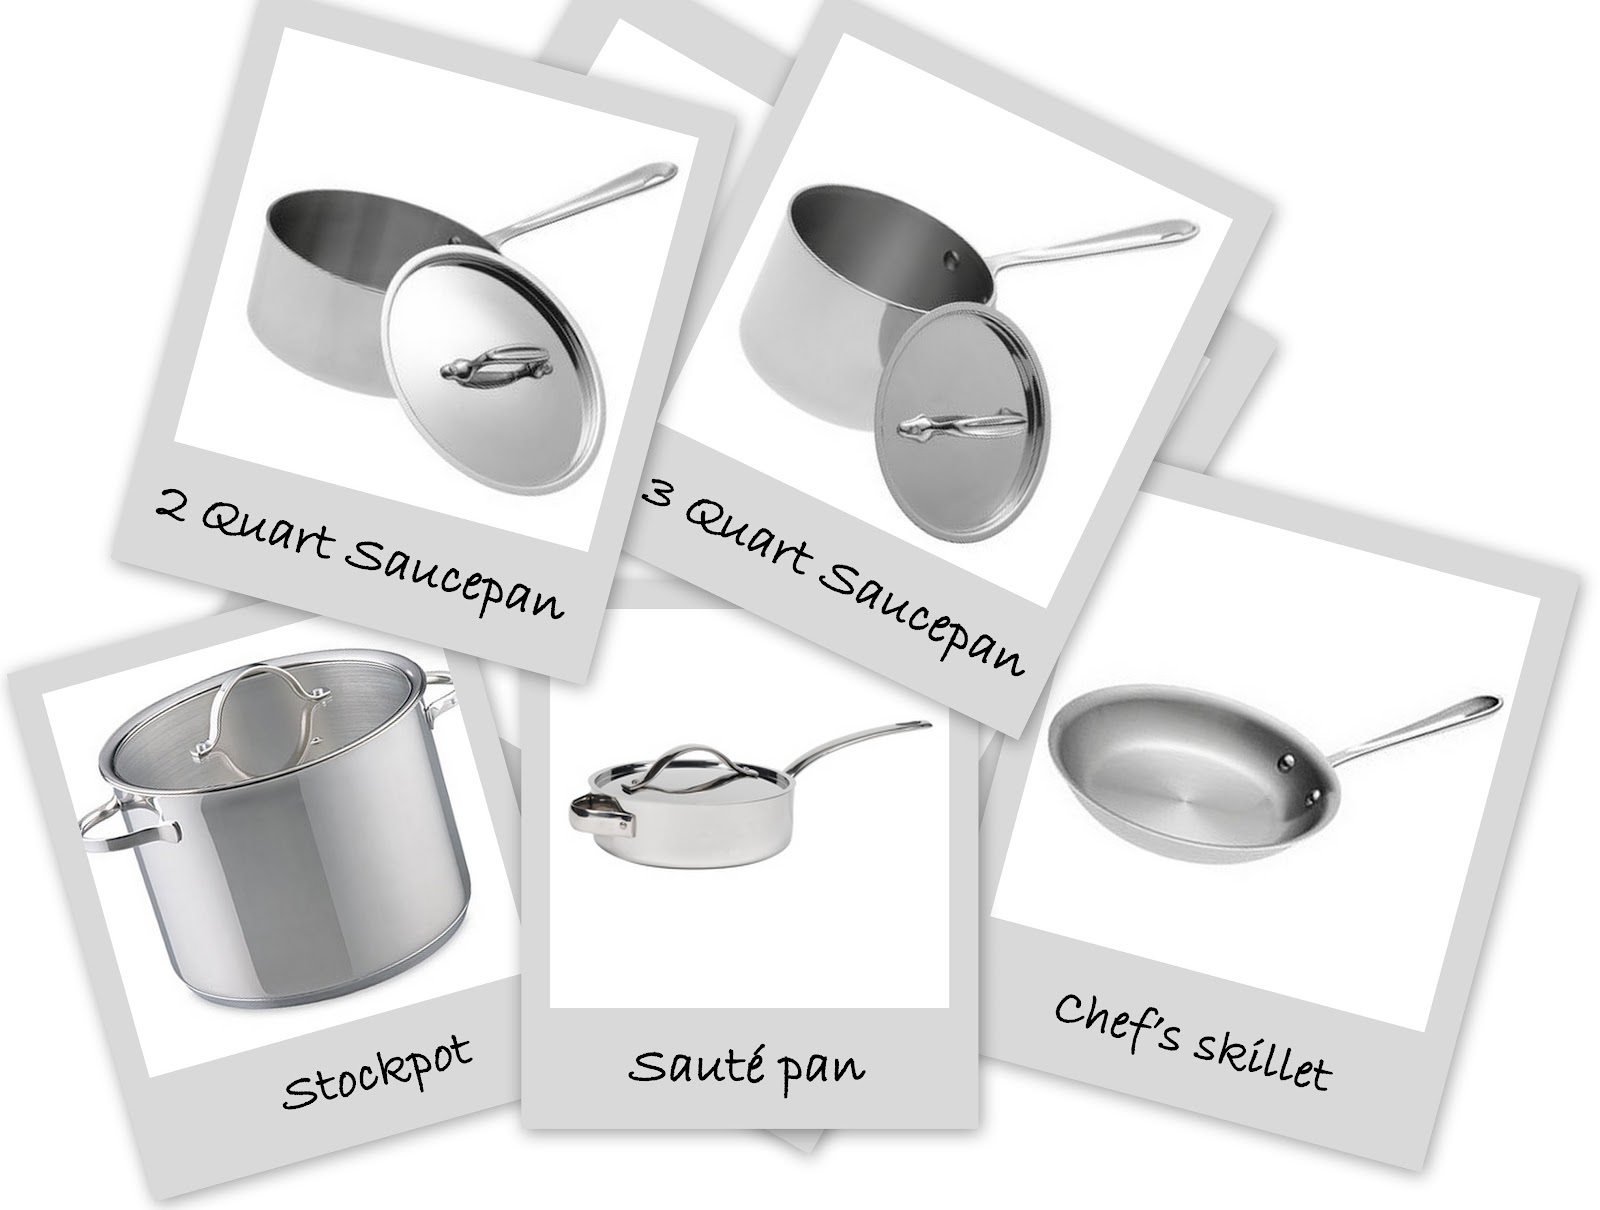 Kitchen equipment and their uses - Basic To Advanced Cooking Equipment